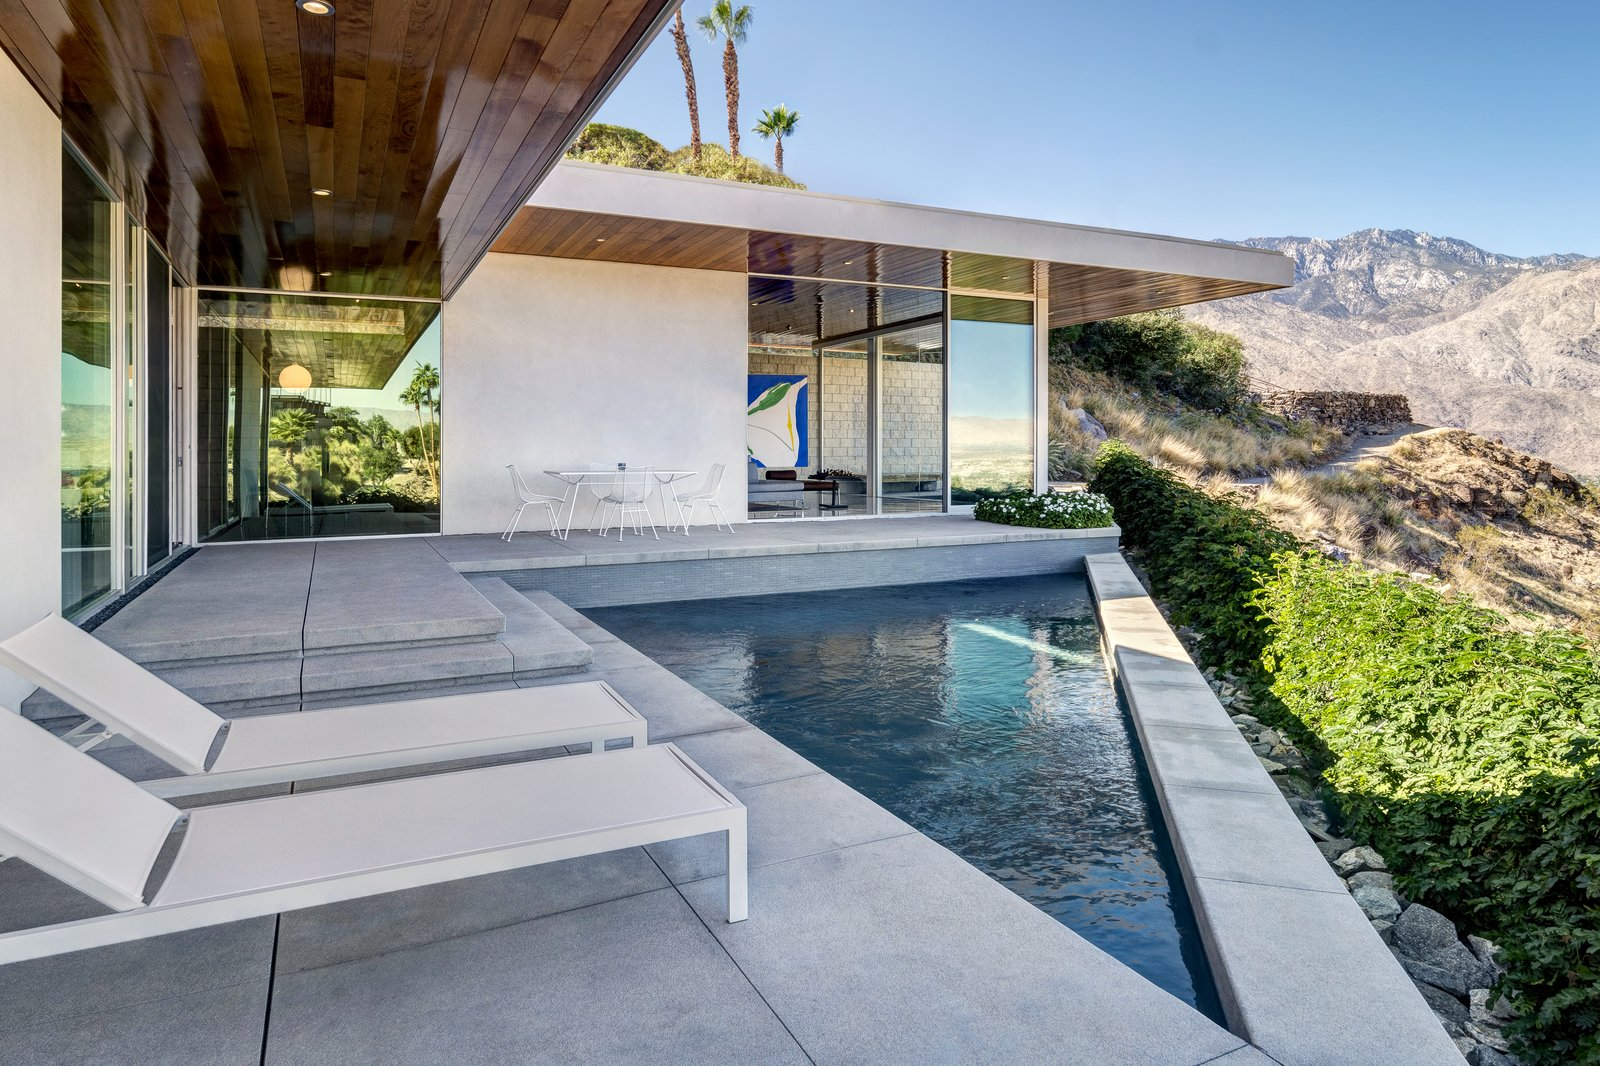 Southridge Drive by O2 Architecture pool